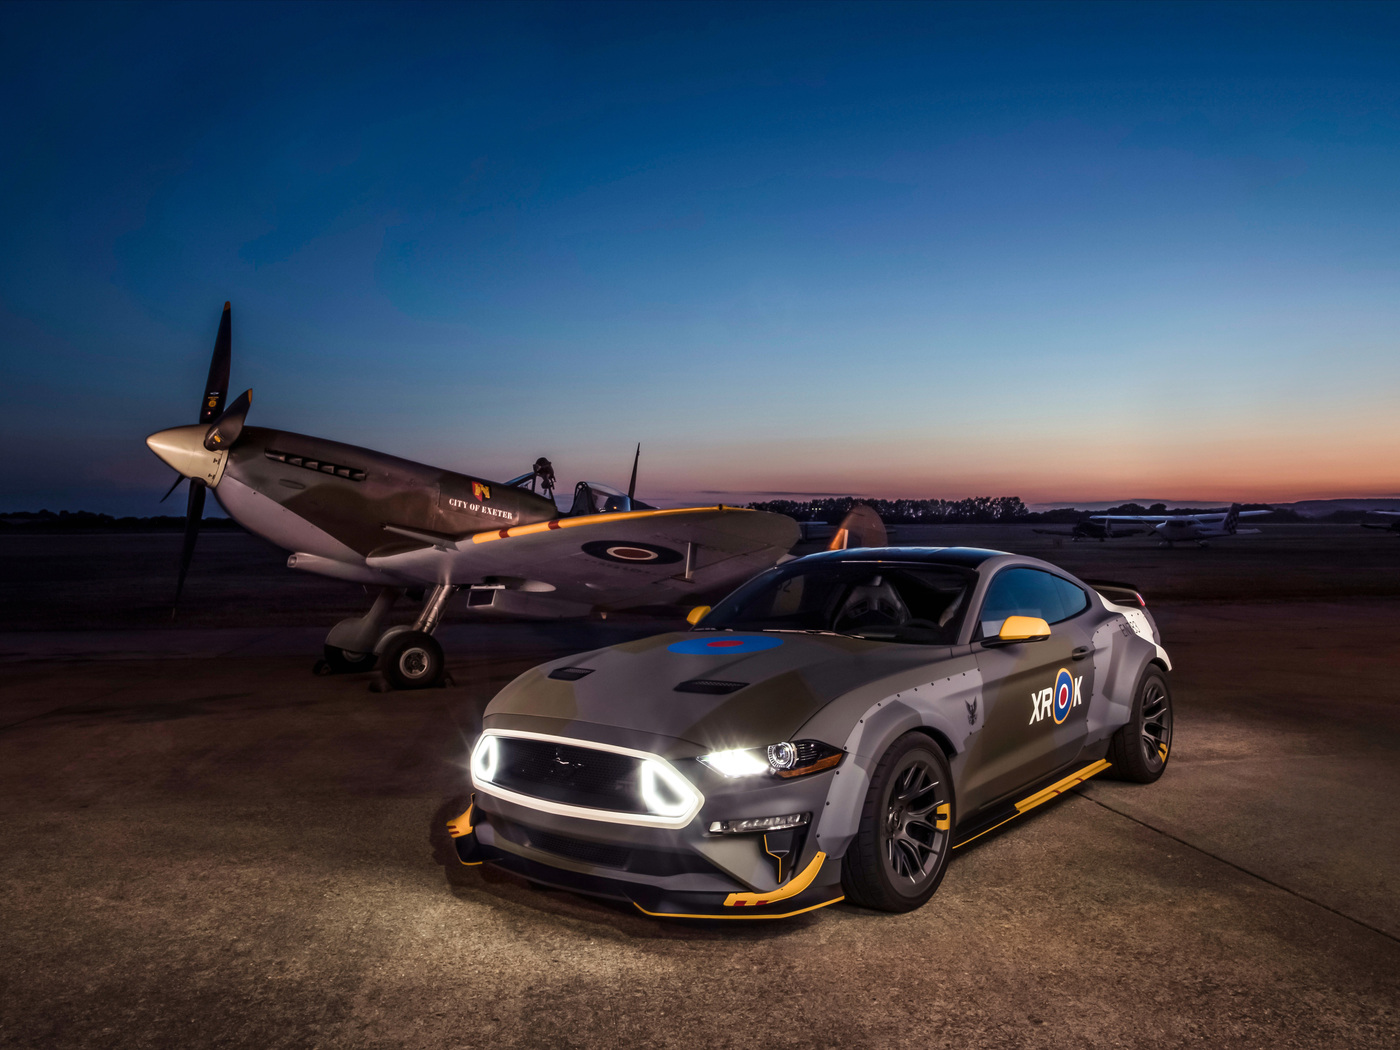 1400x1050 Ford Eagle Squadron Mustang Gt 4k 1400x1050 Resolution Hd